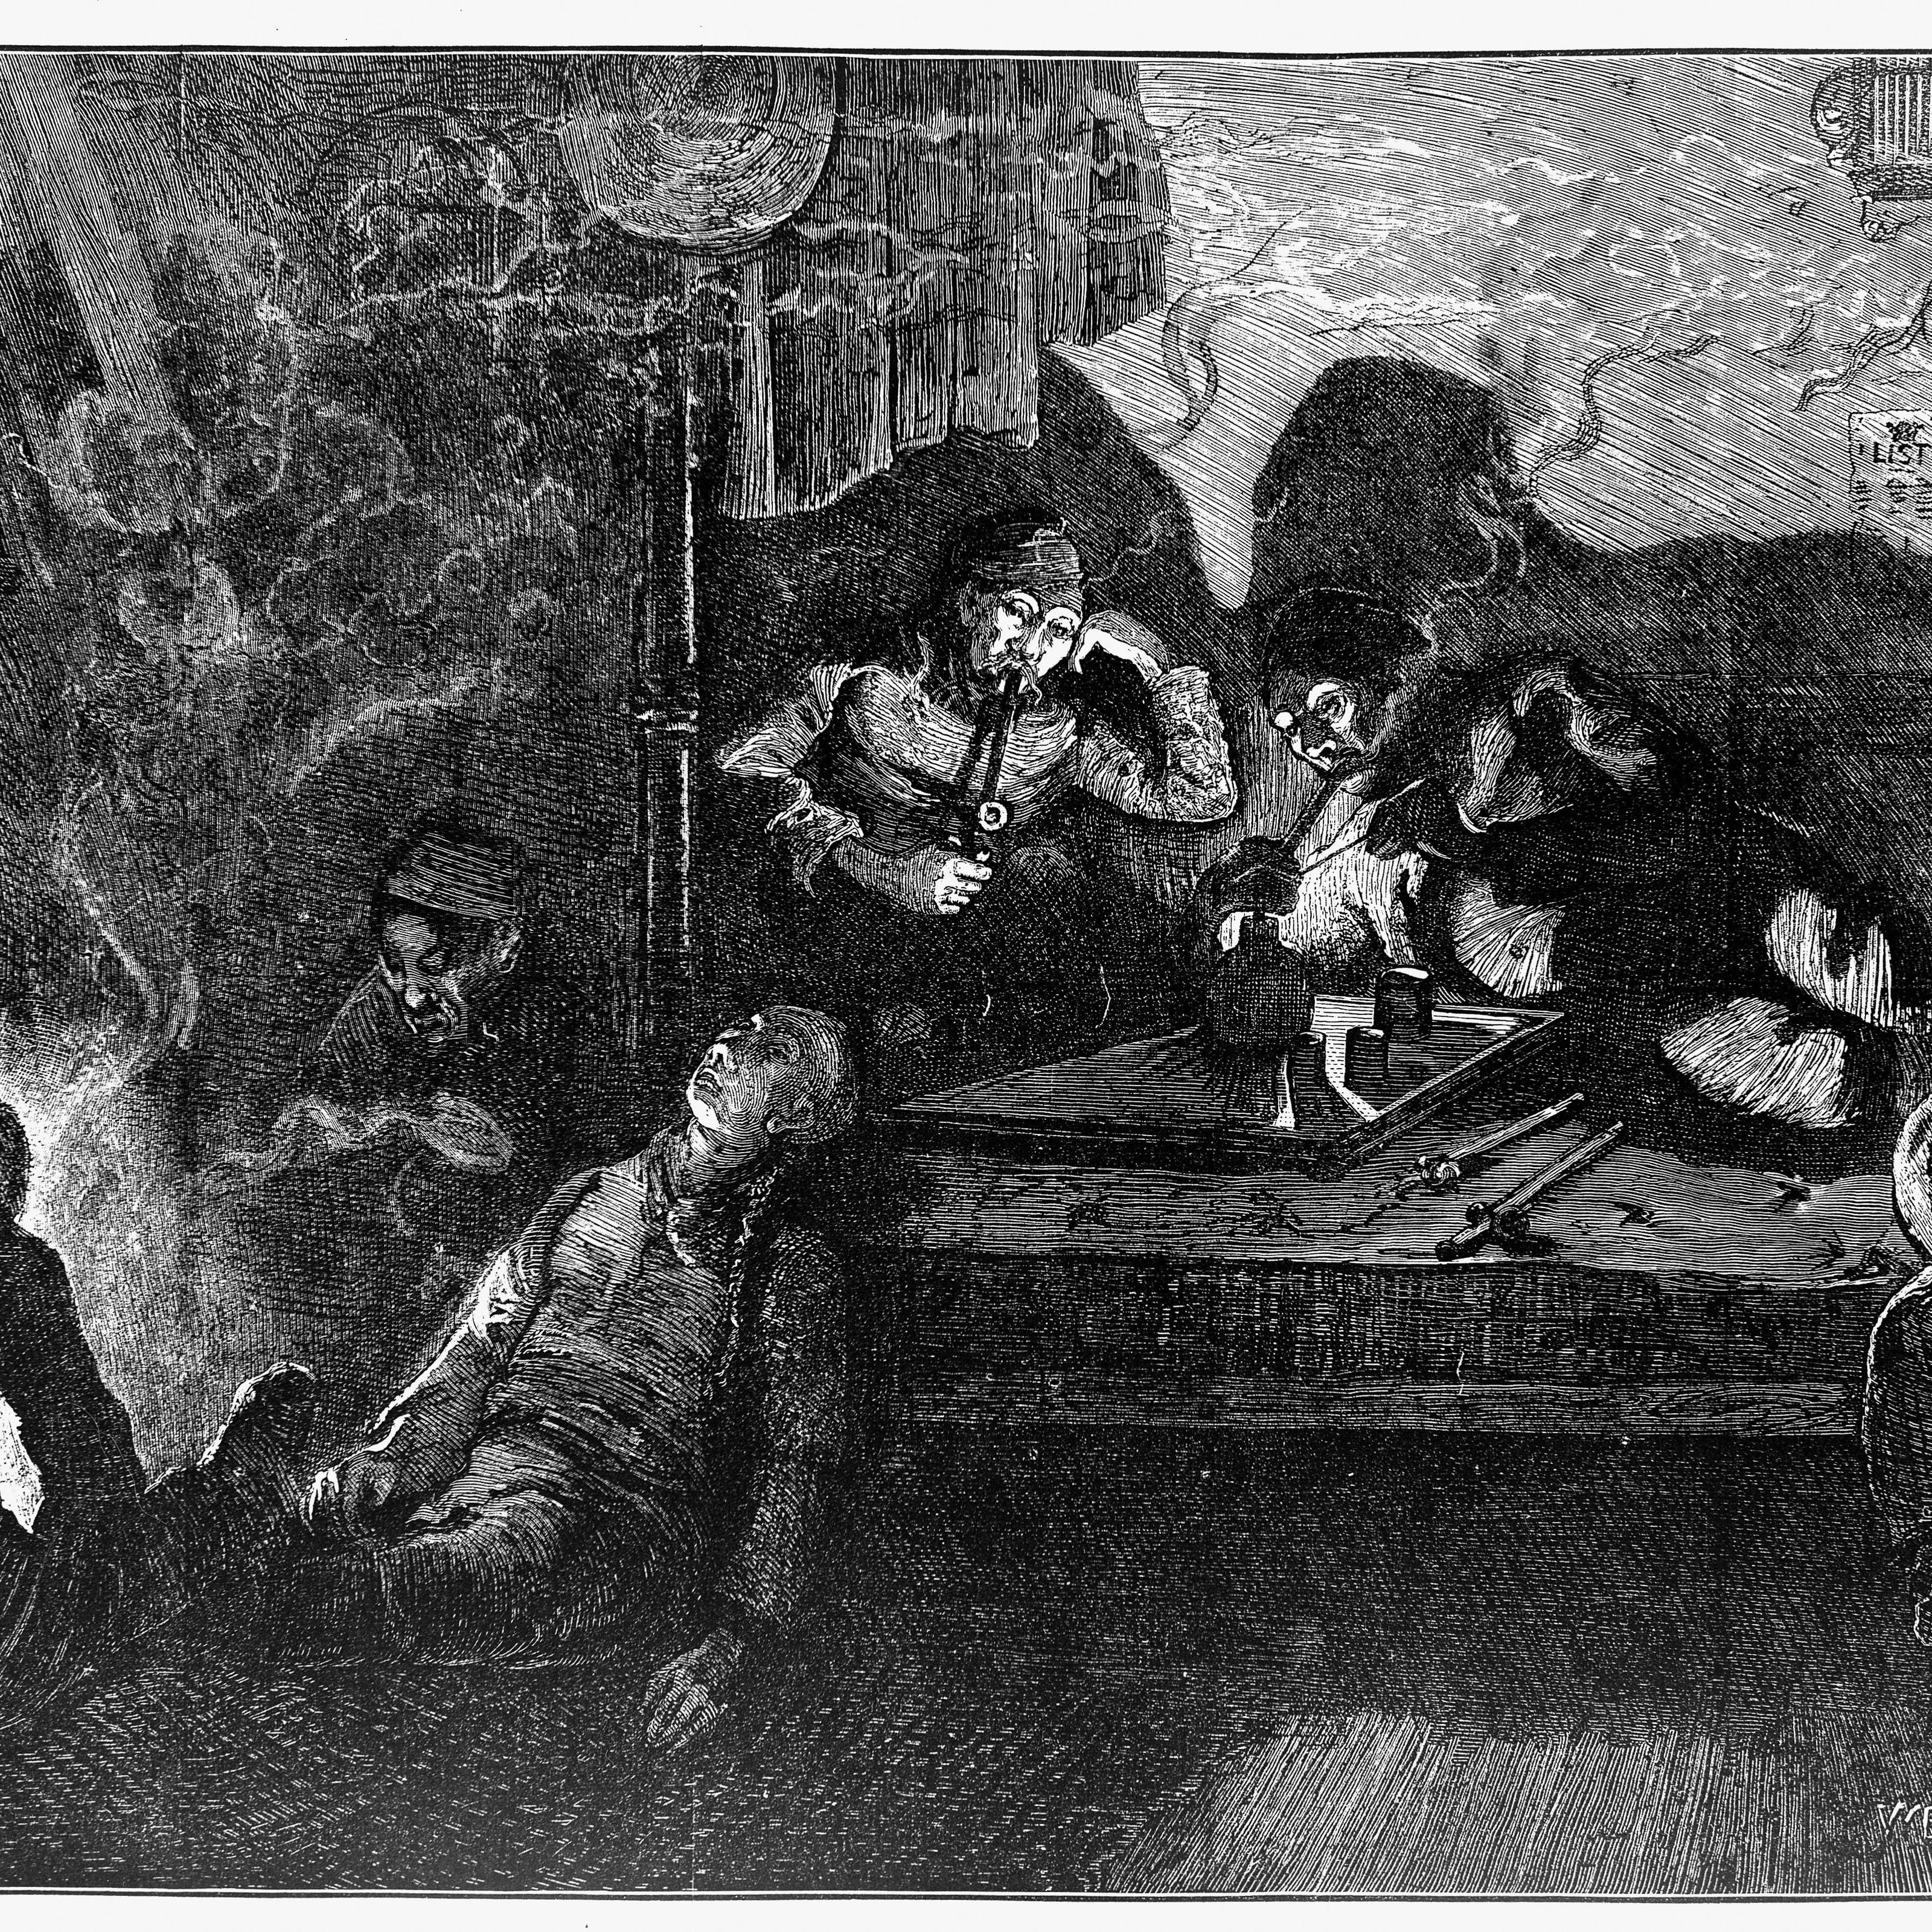 A black-and-white illustration of men smoking opium while others are passed out